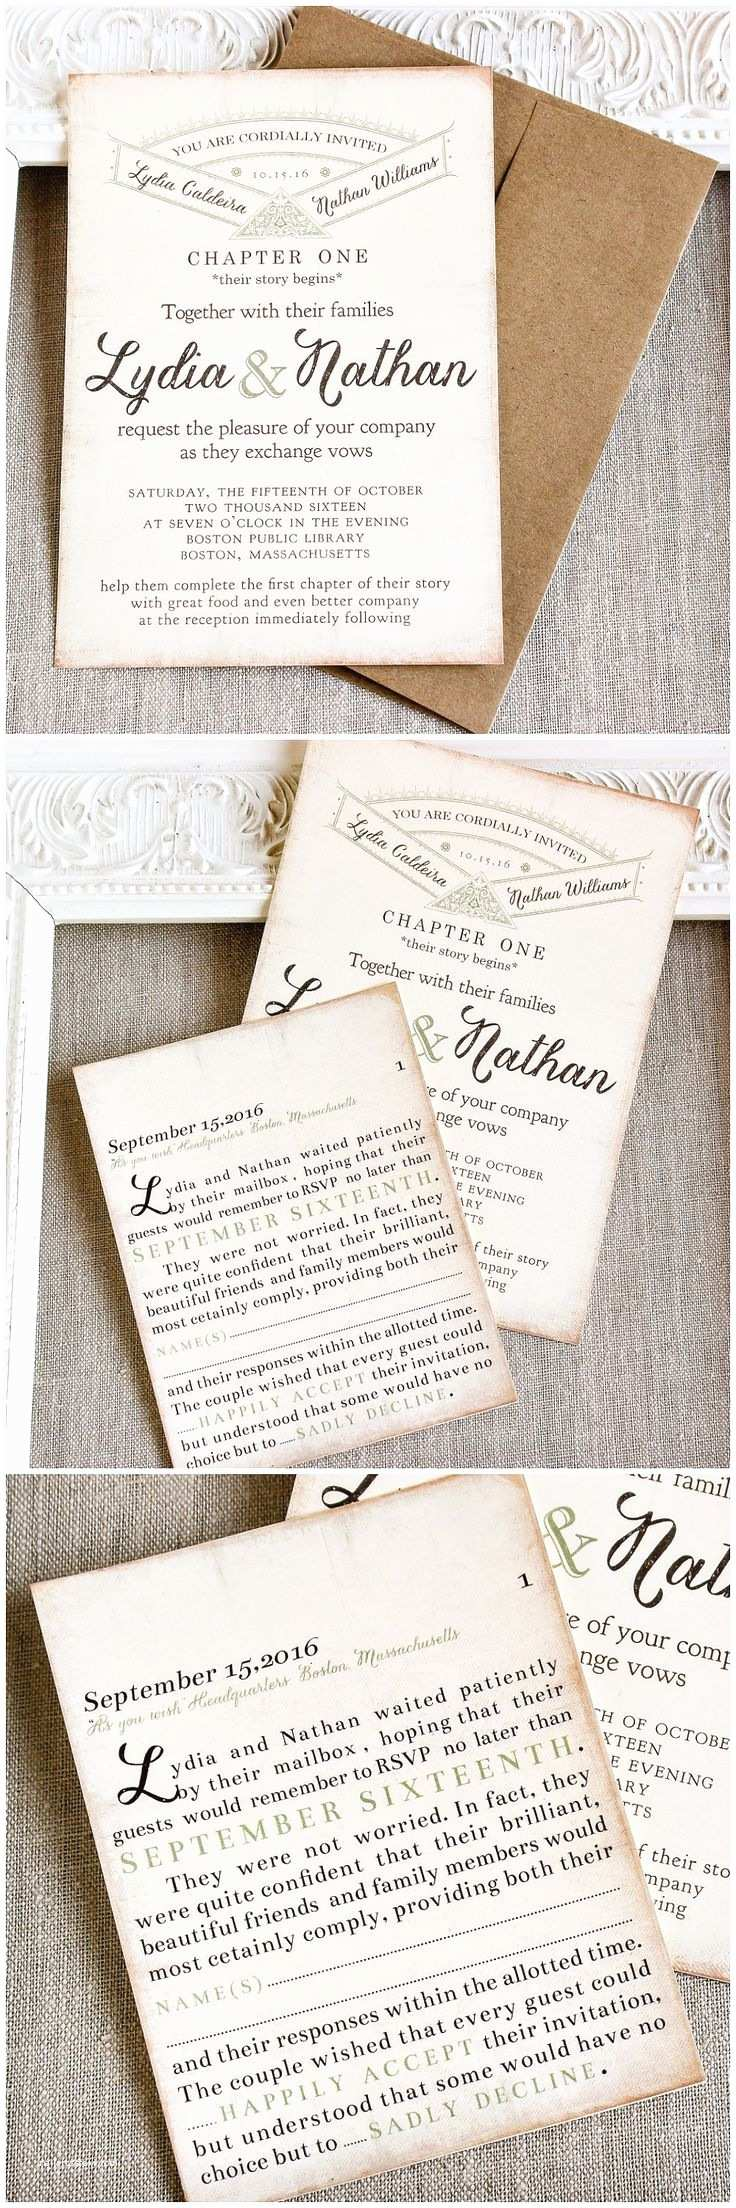 Literary Themed Wedding Invitations 25 Best Ideas About Literary Themes On